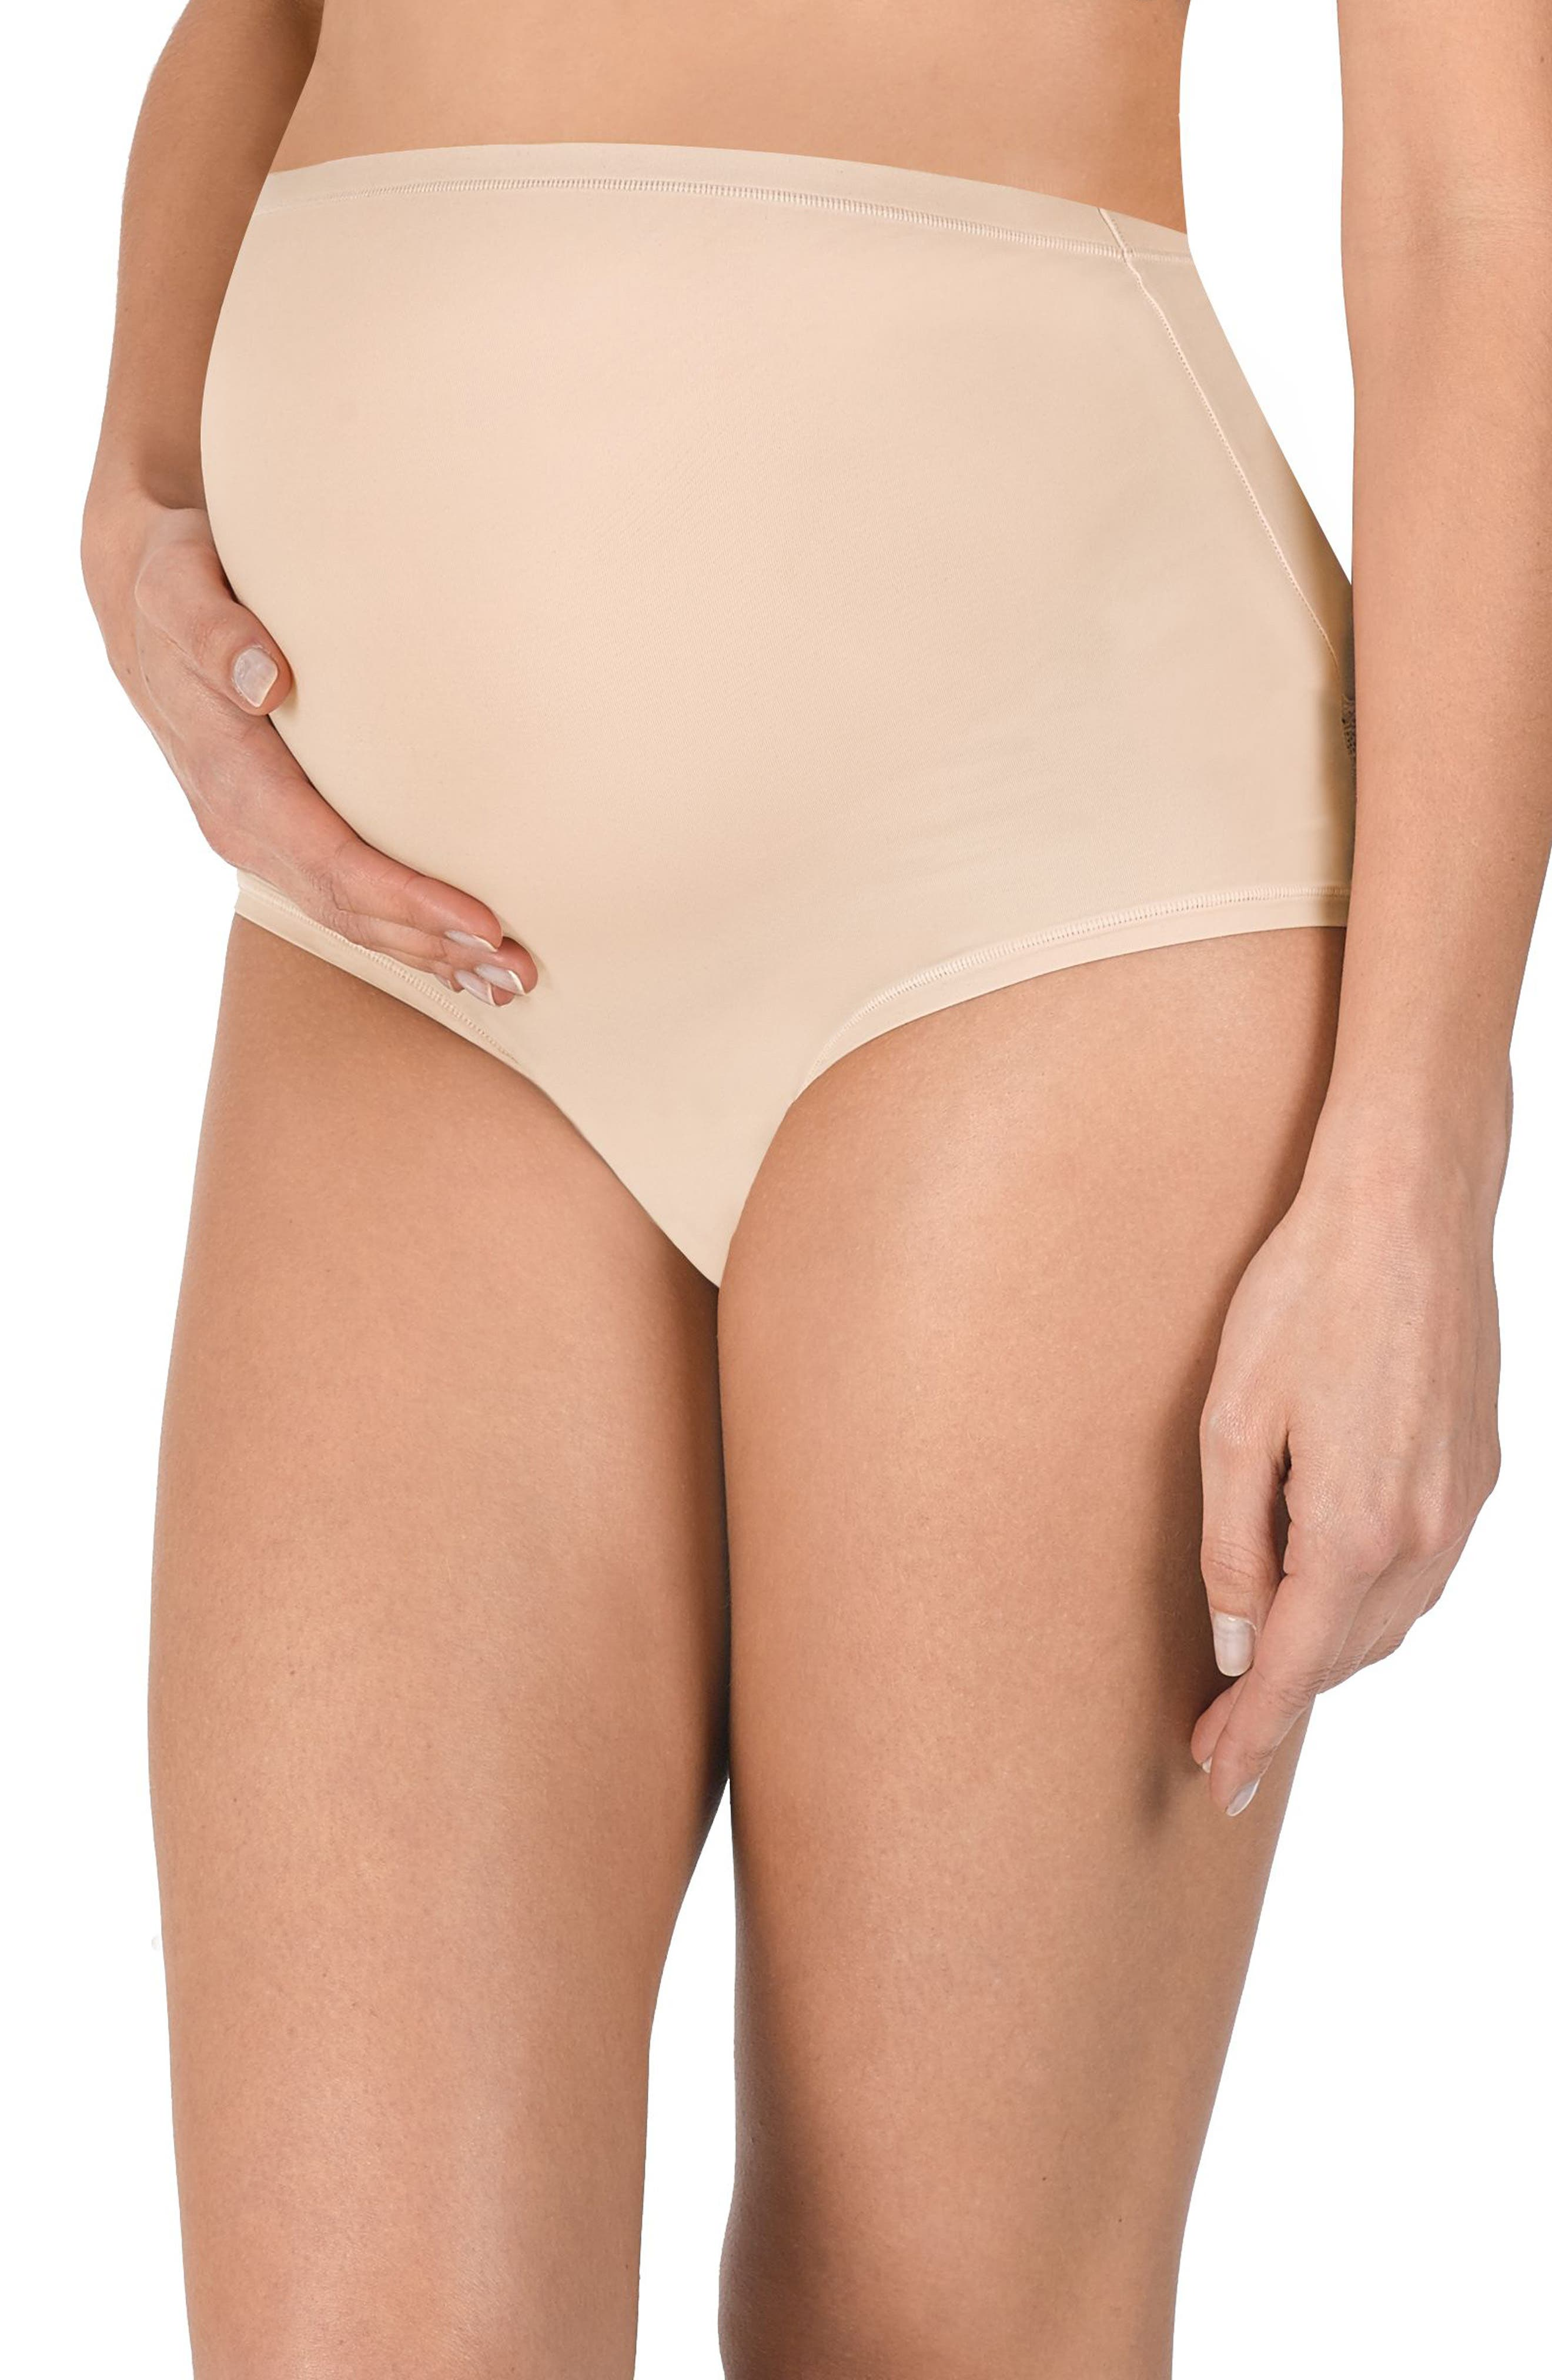 Bliss Maternity Briefs,                             Main thumbnail 1, color,                             CAMEO ROSE